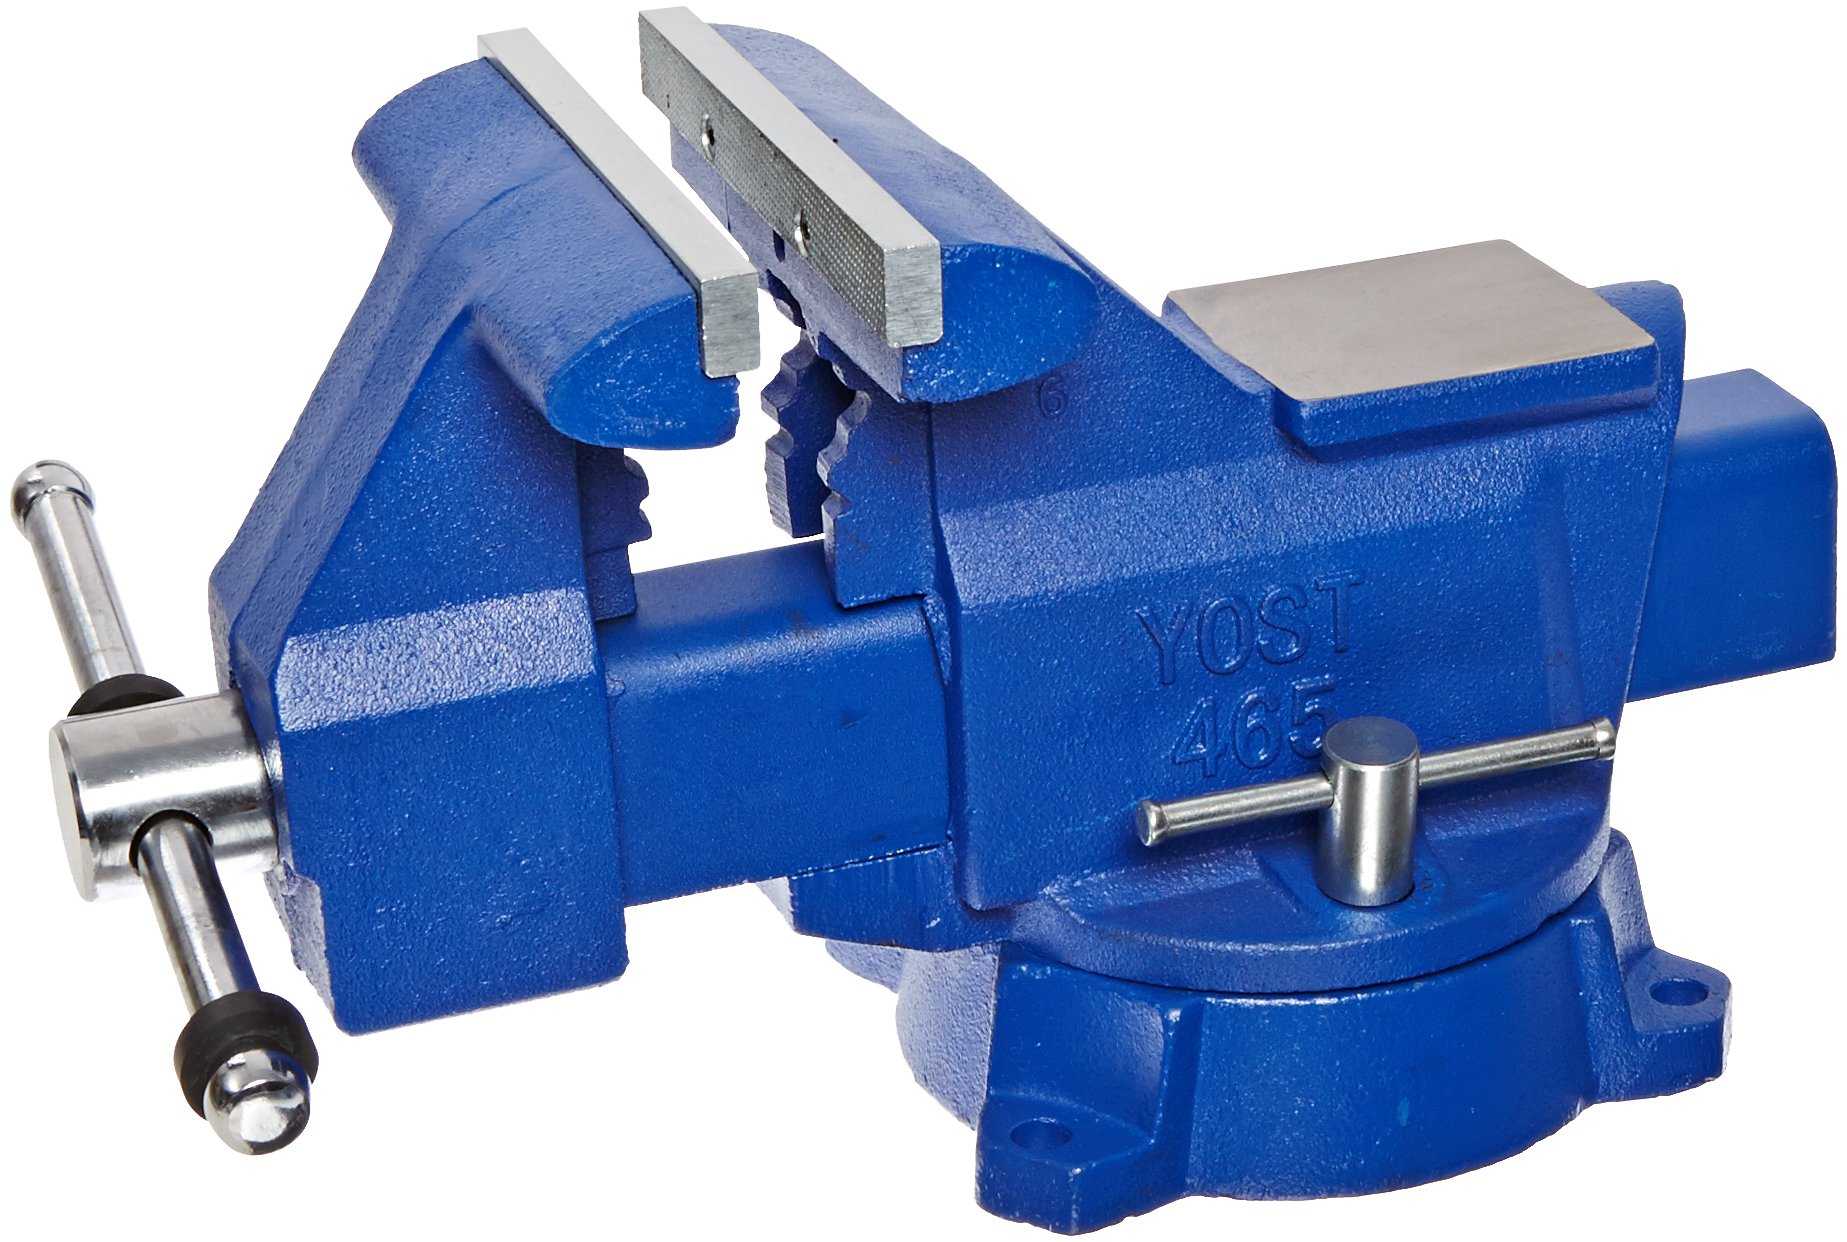 Yost Vises 465 6.5'' Combination Pipe and Bench Vise by Yost Tools (Image #2)